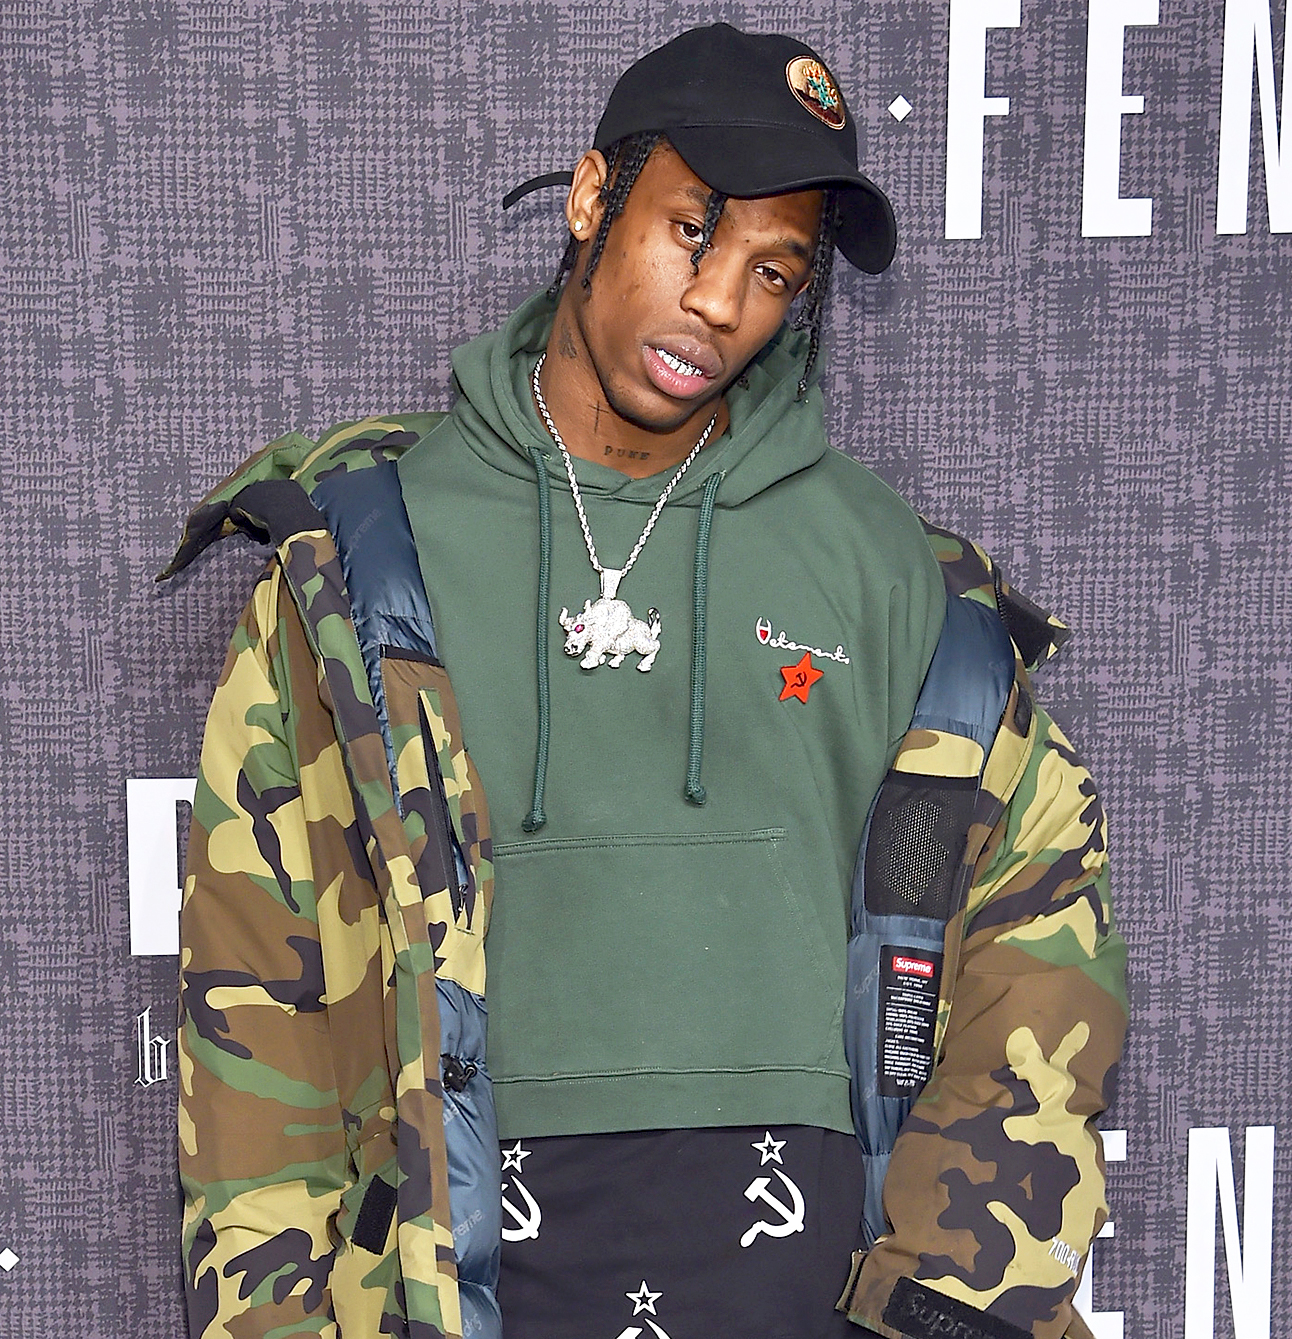 Travis Scott attends the FENTY PUMA by Rihanna AW16 Collection during Fall 2016 New York Fashion Week at 23 Wall Street in New York City.